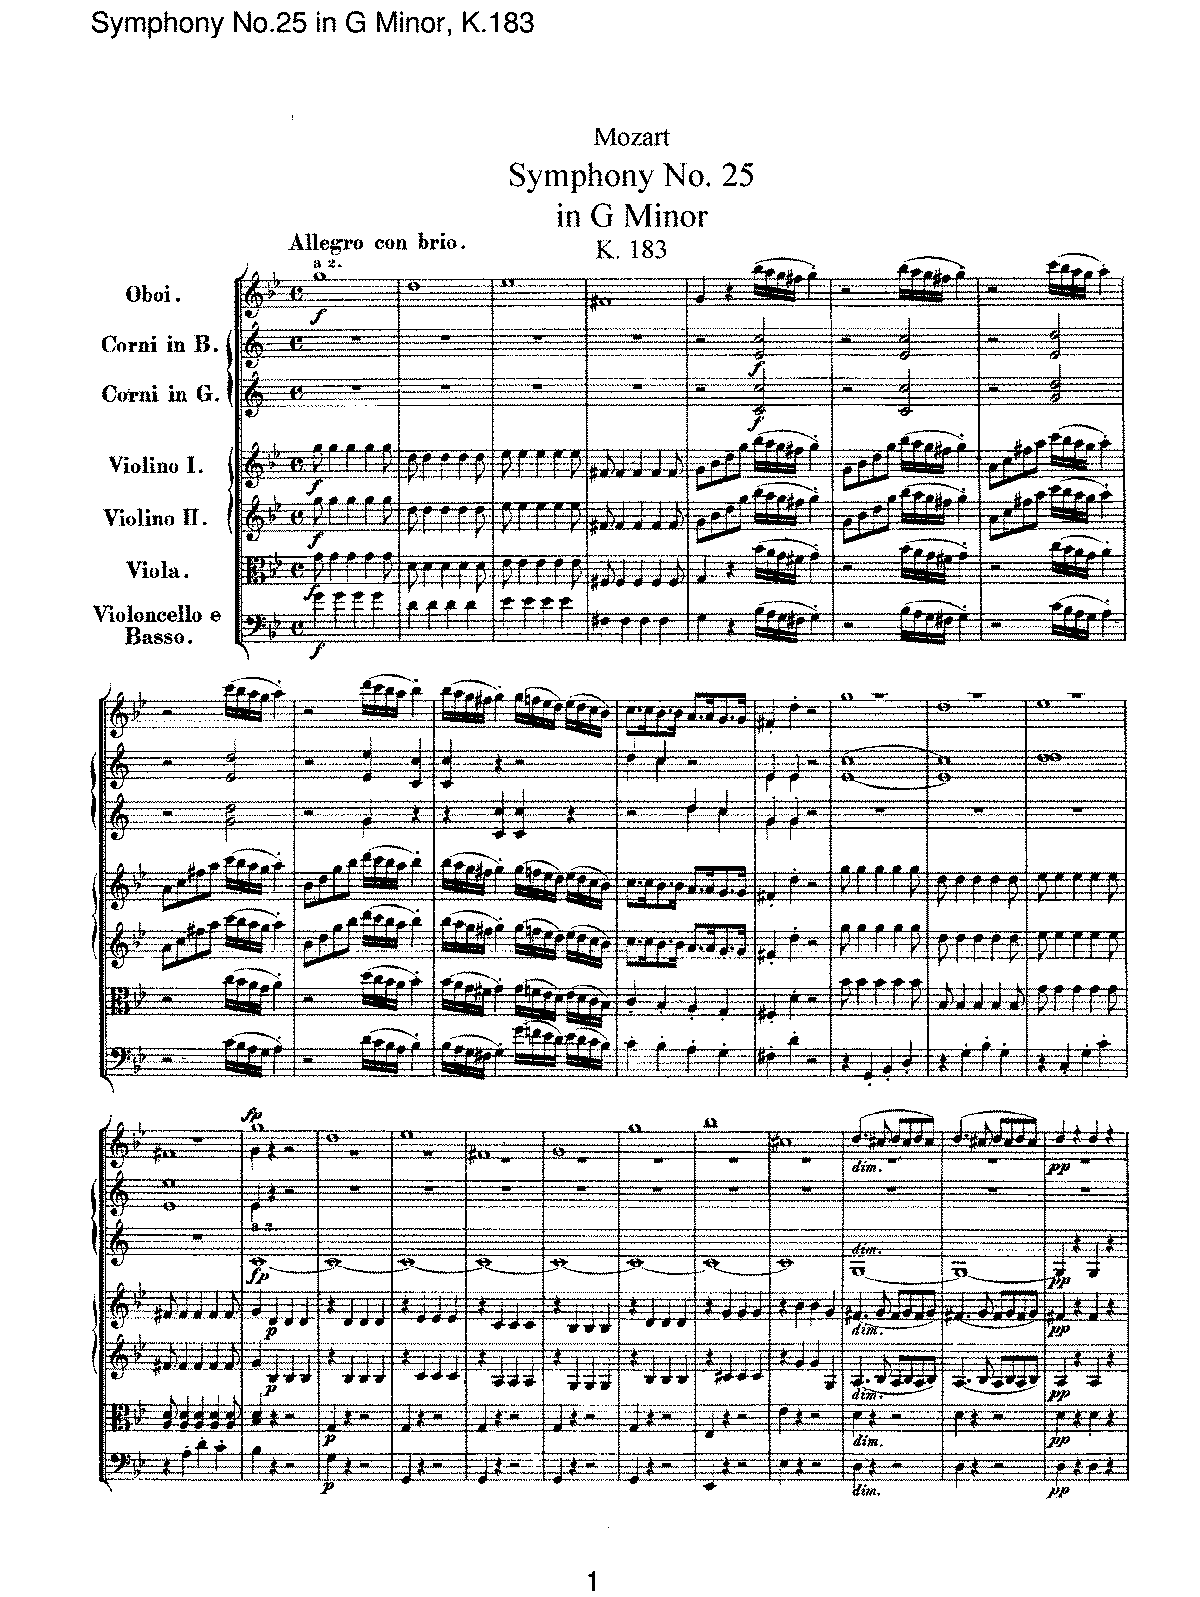 Mozart - Symphony No 25 in G Minor, K183.pdf